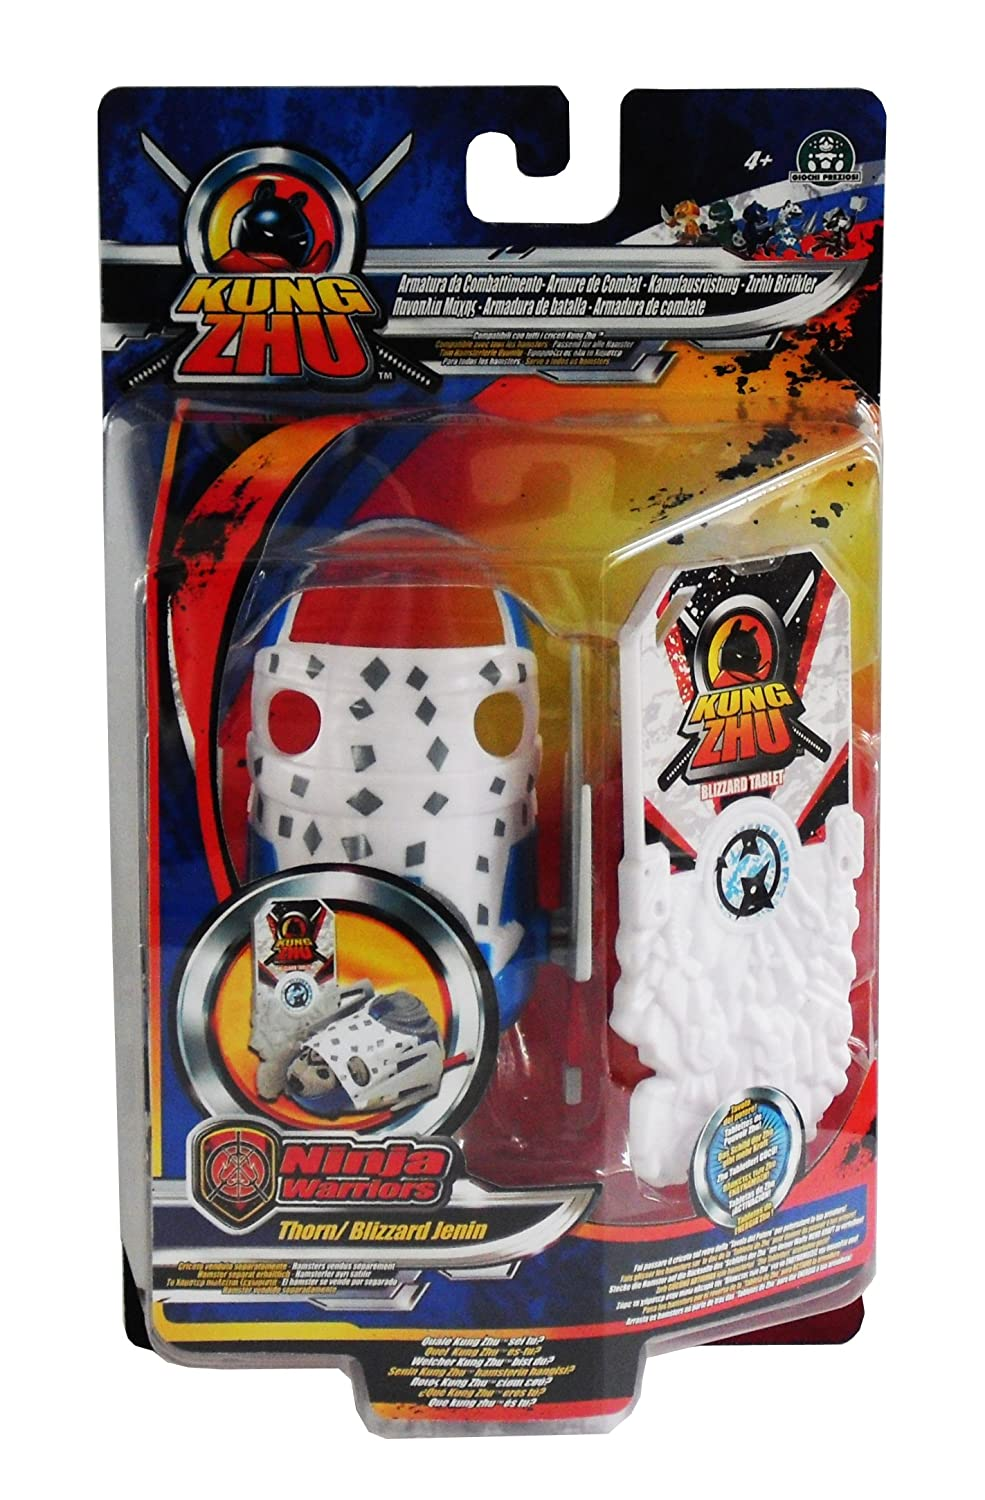 KUNG ZHU NINJA WARRIORS Thorn/Blizzard Jenin: Amazon.es ...